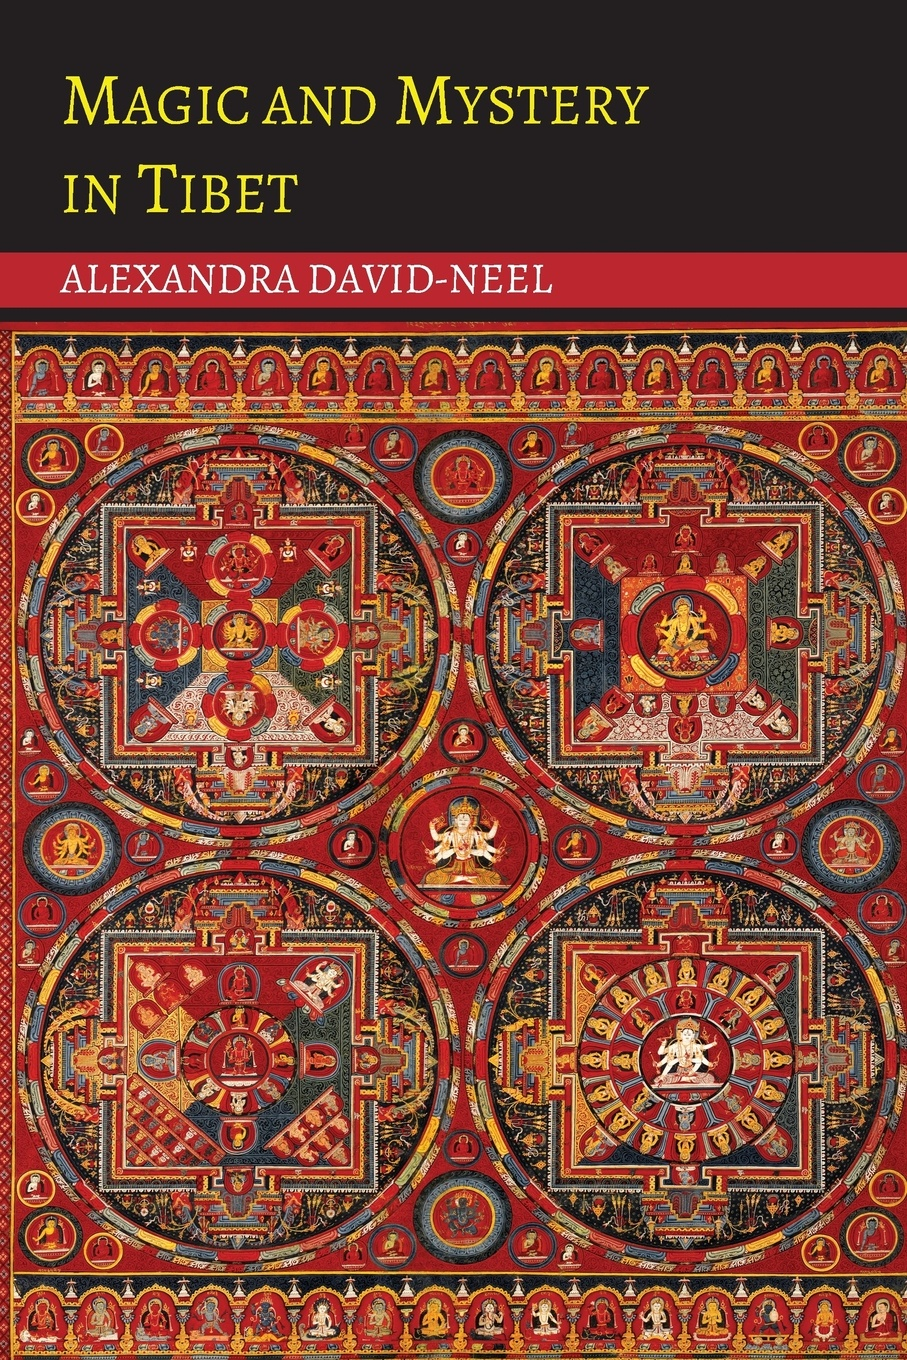 Alexandra David-Neel Magic and Mystery in Tibet reginald fleming johnston twilight in the forbidden city illustrated and revised 4th edition